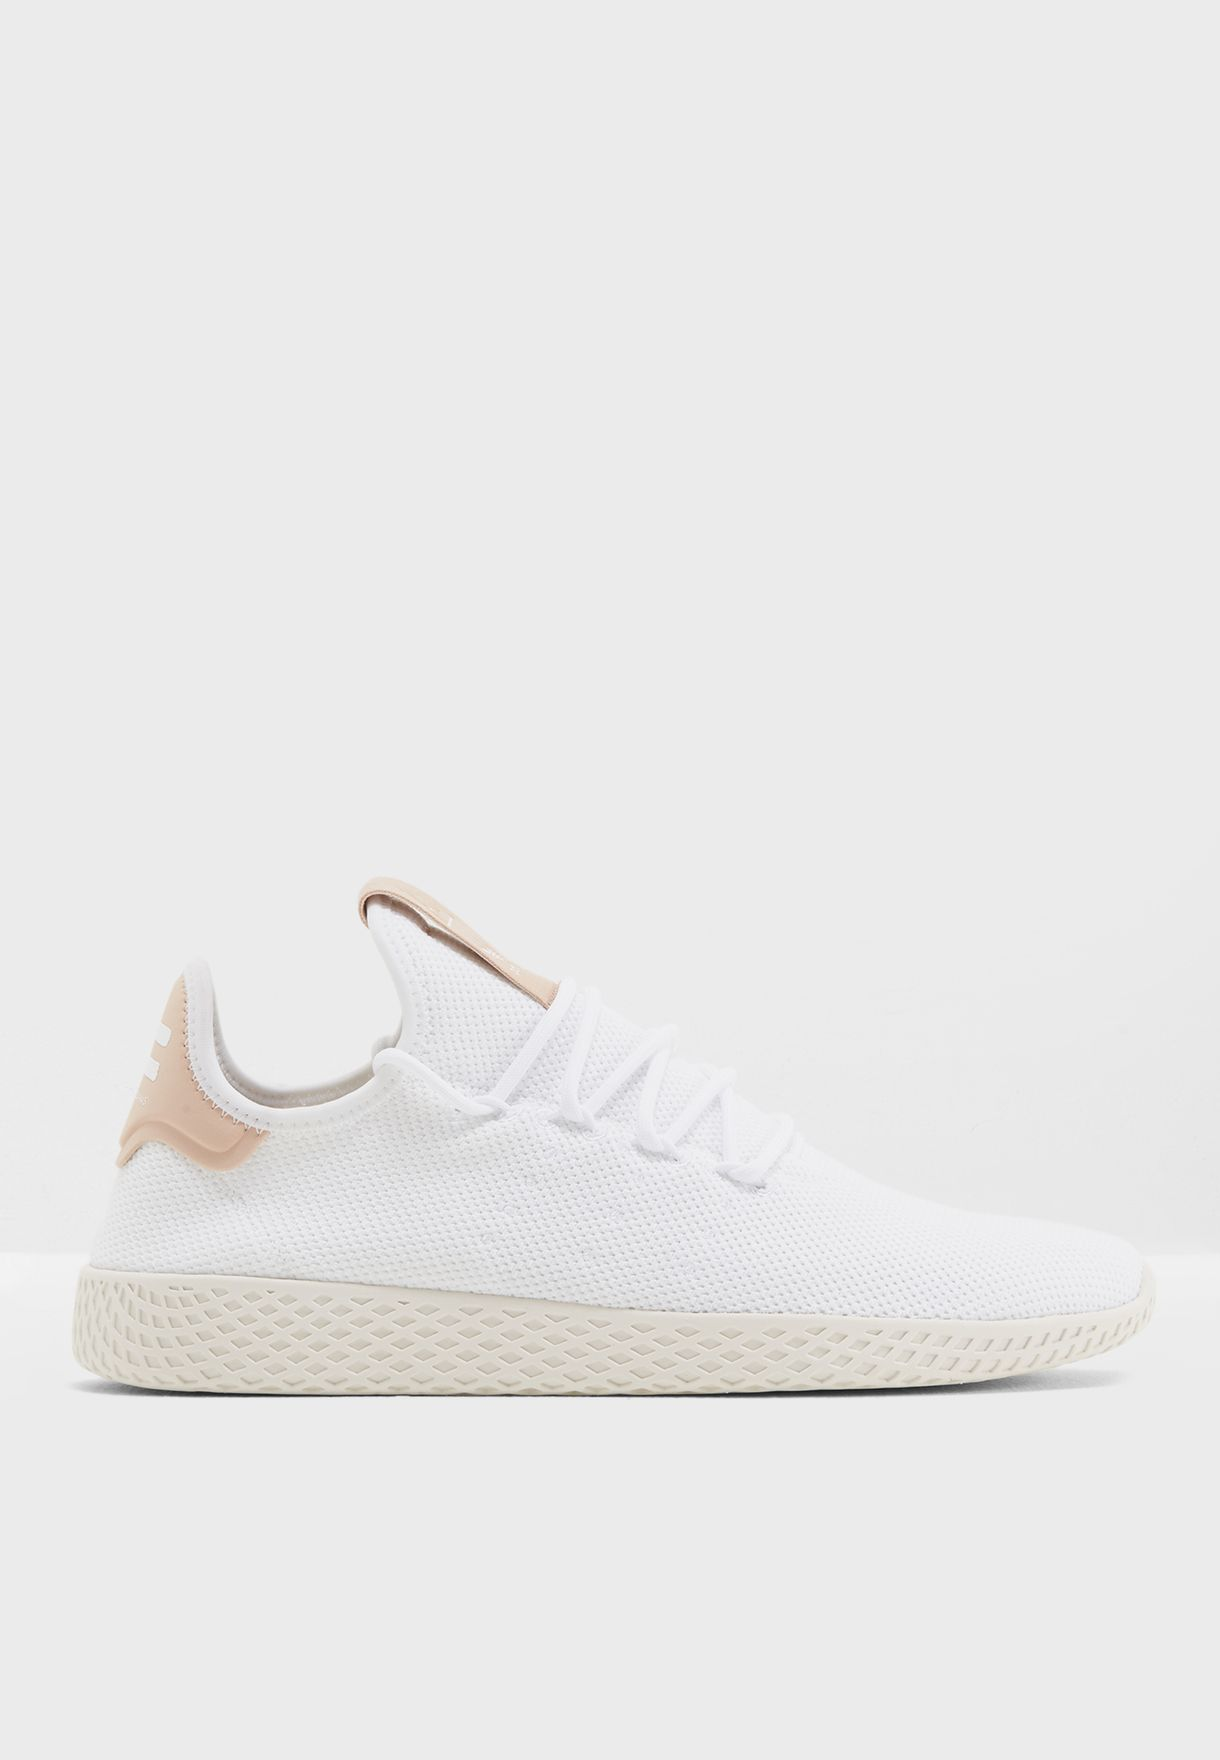 62a77148a Shop adidas Originals white Pharrell Williams Hu Tennis CQ2169 for ...